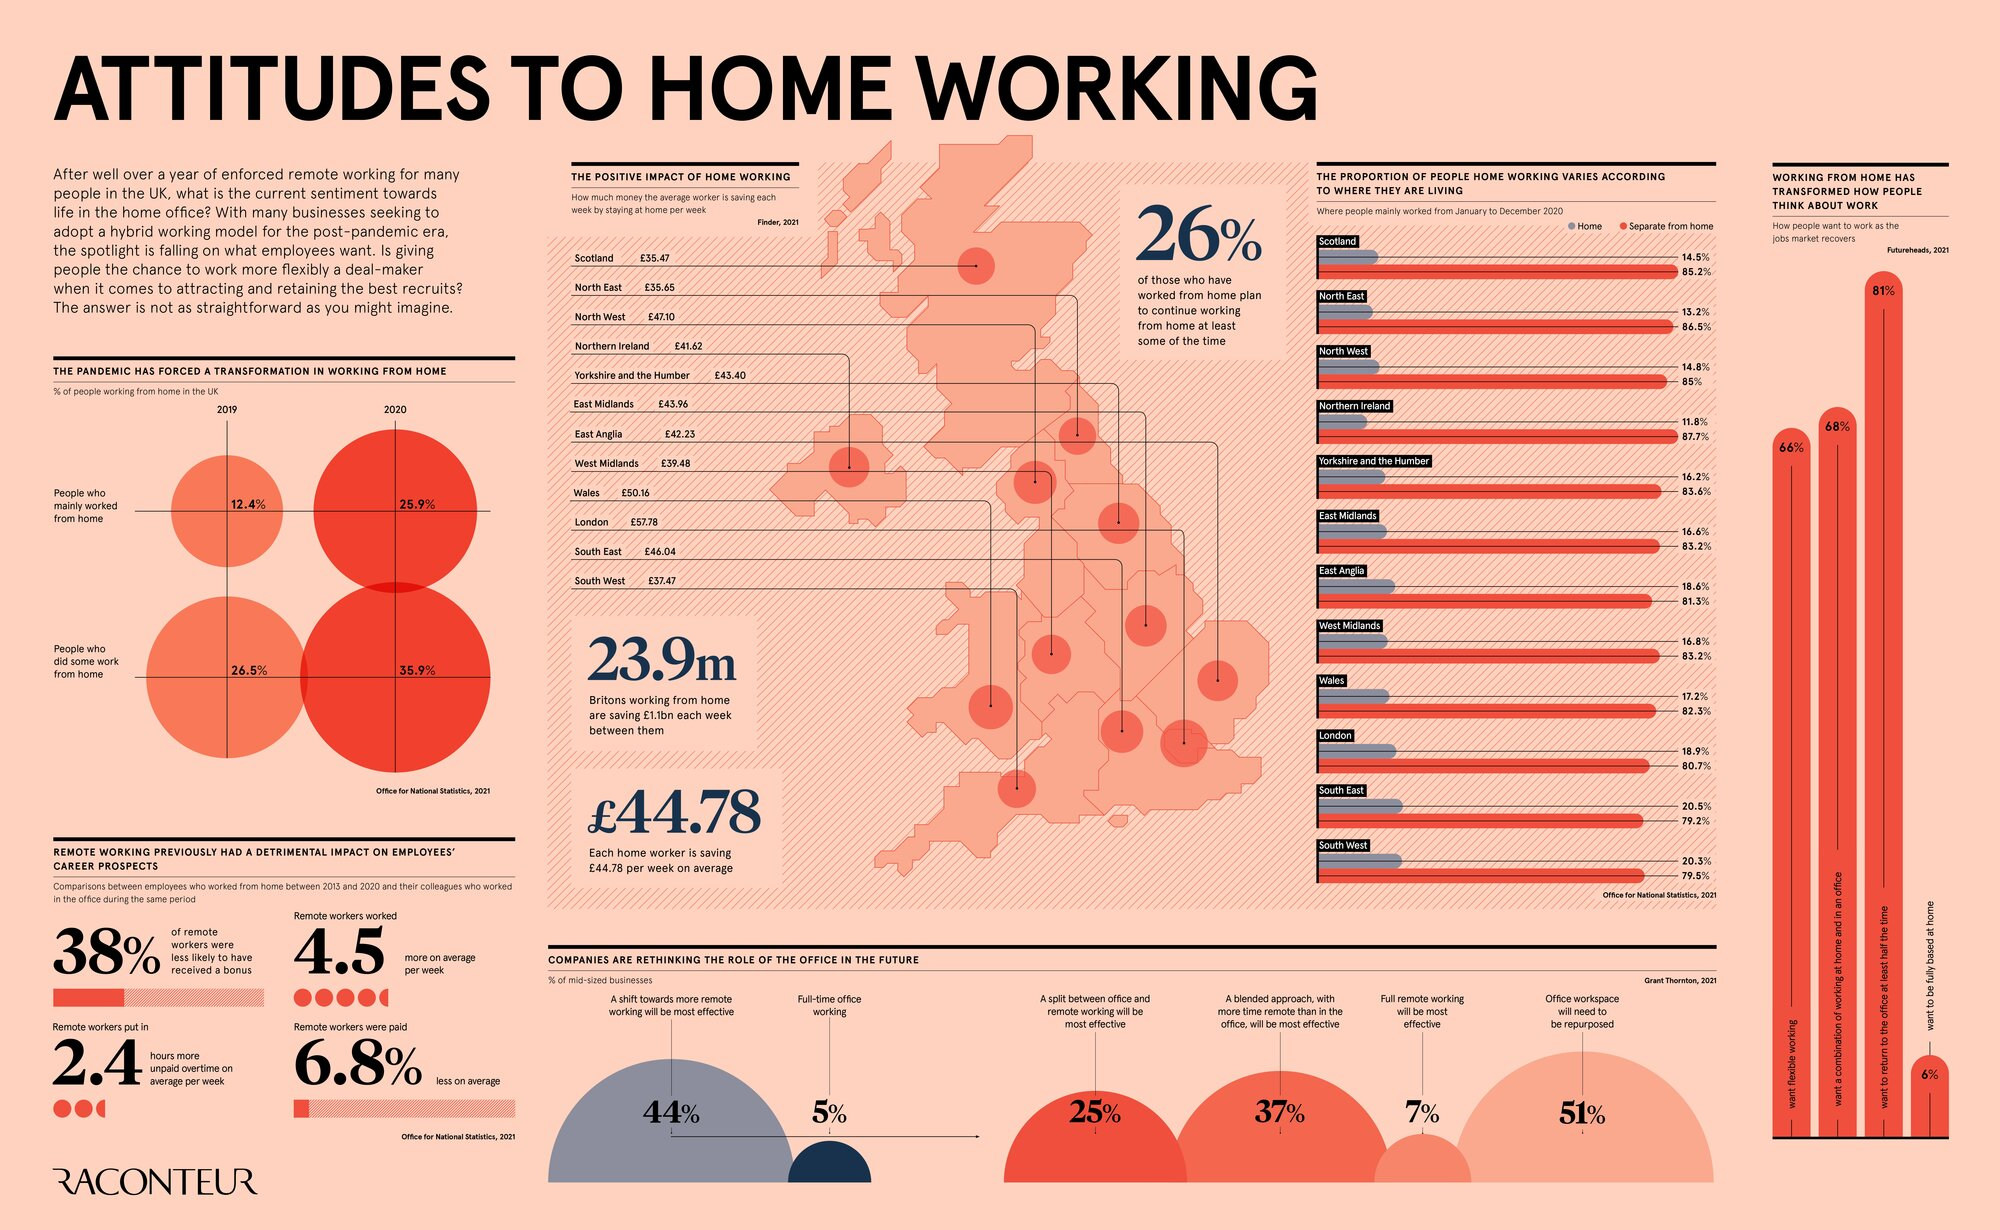 Attitudes To Home Working In The UK